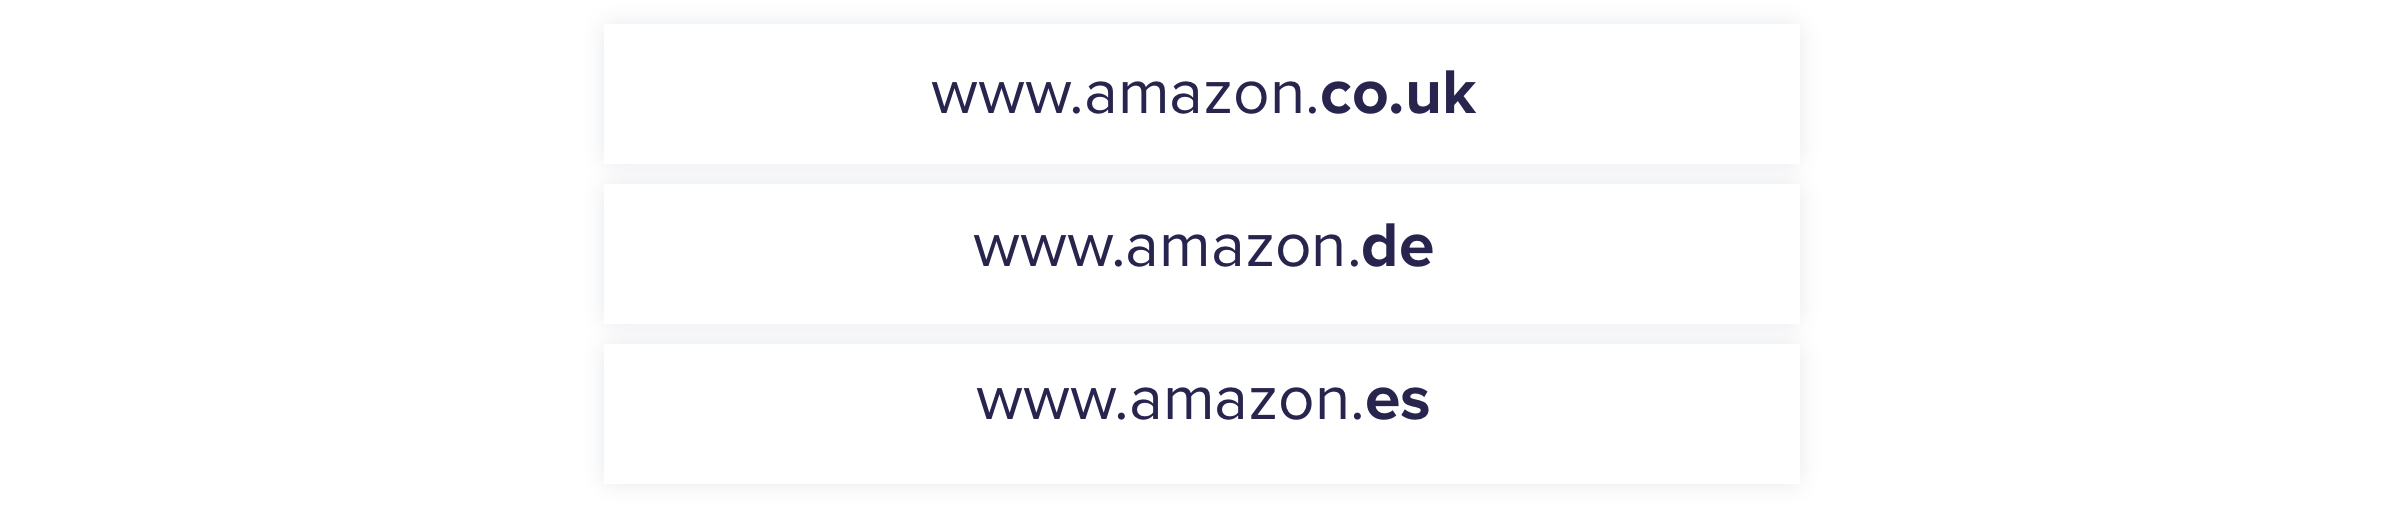 Amazon's domains for different countries